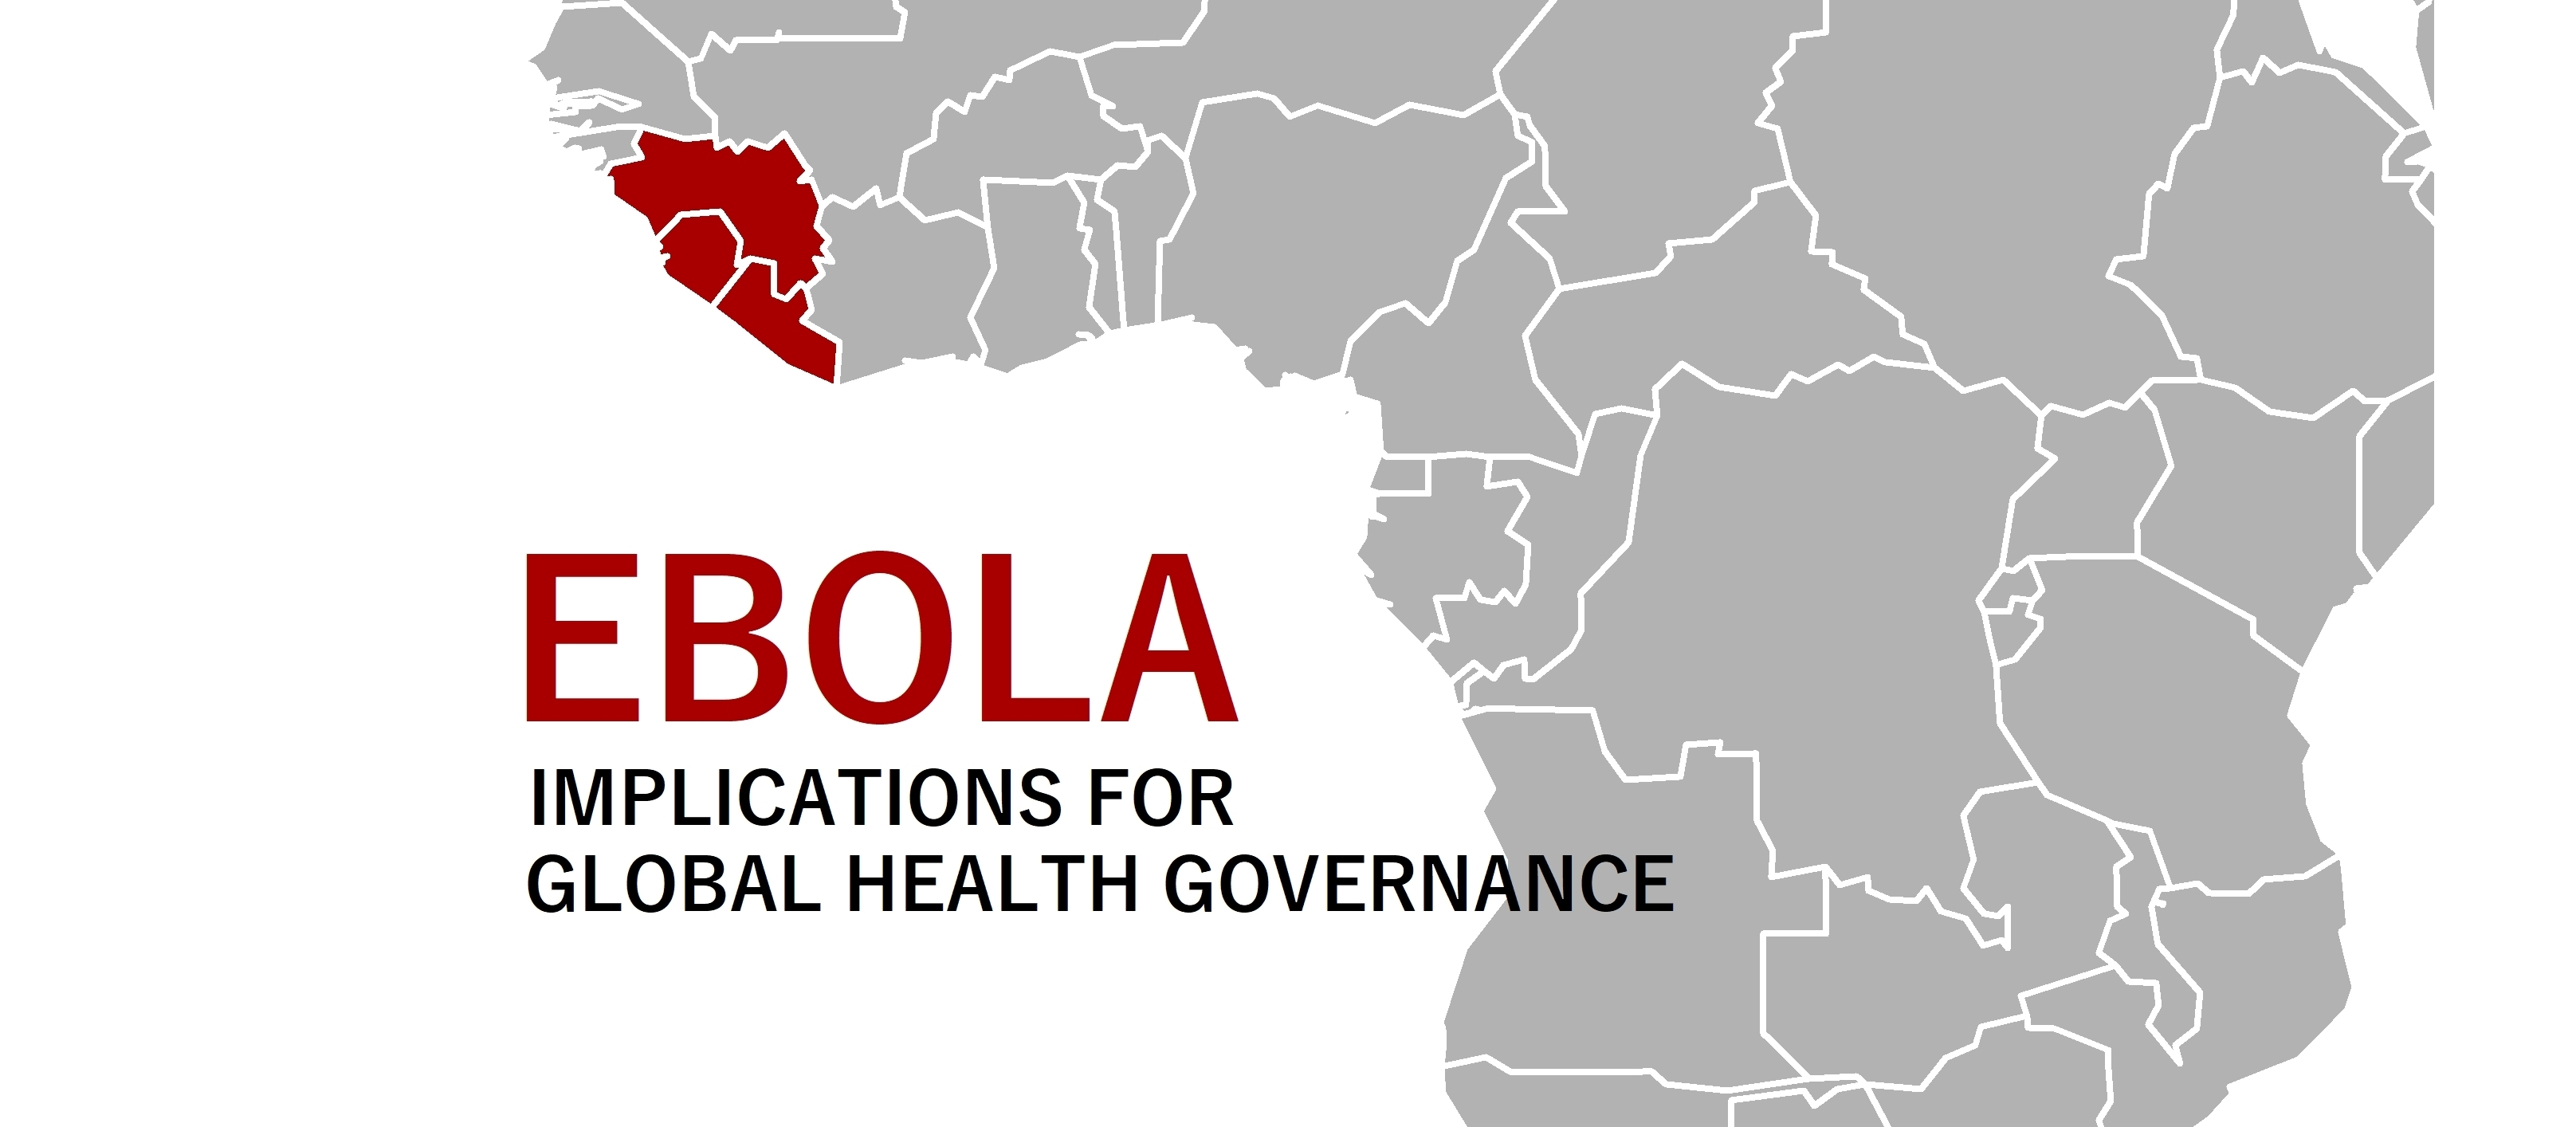 Special Issue: Ebola: Implications For Global Health Governance